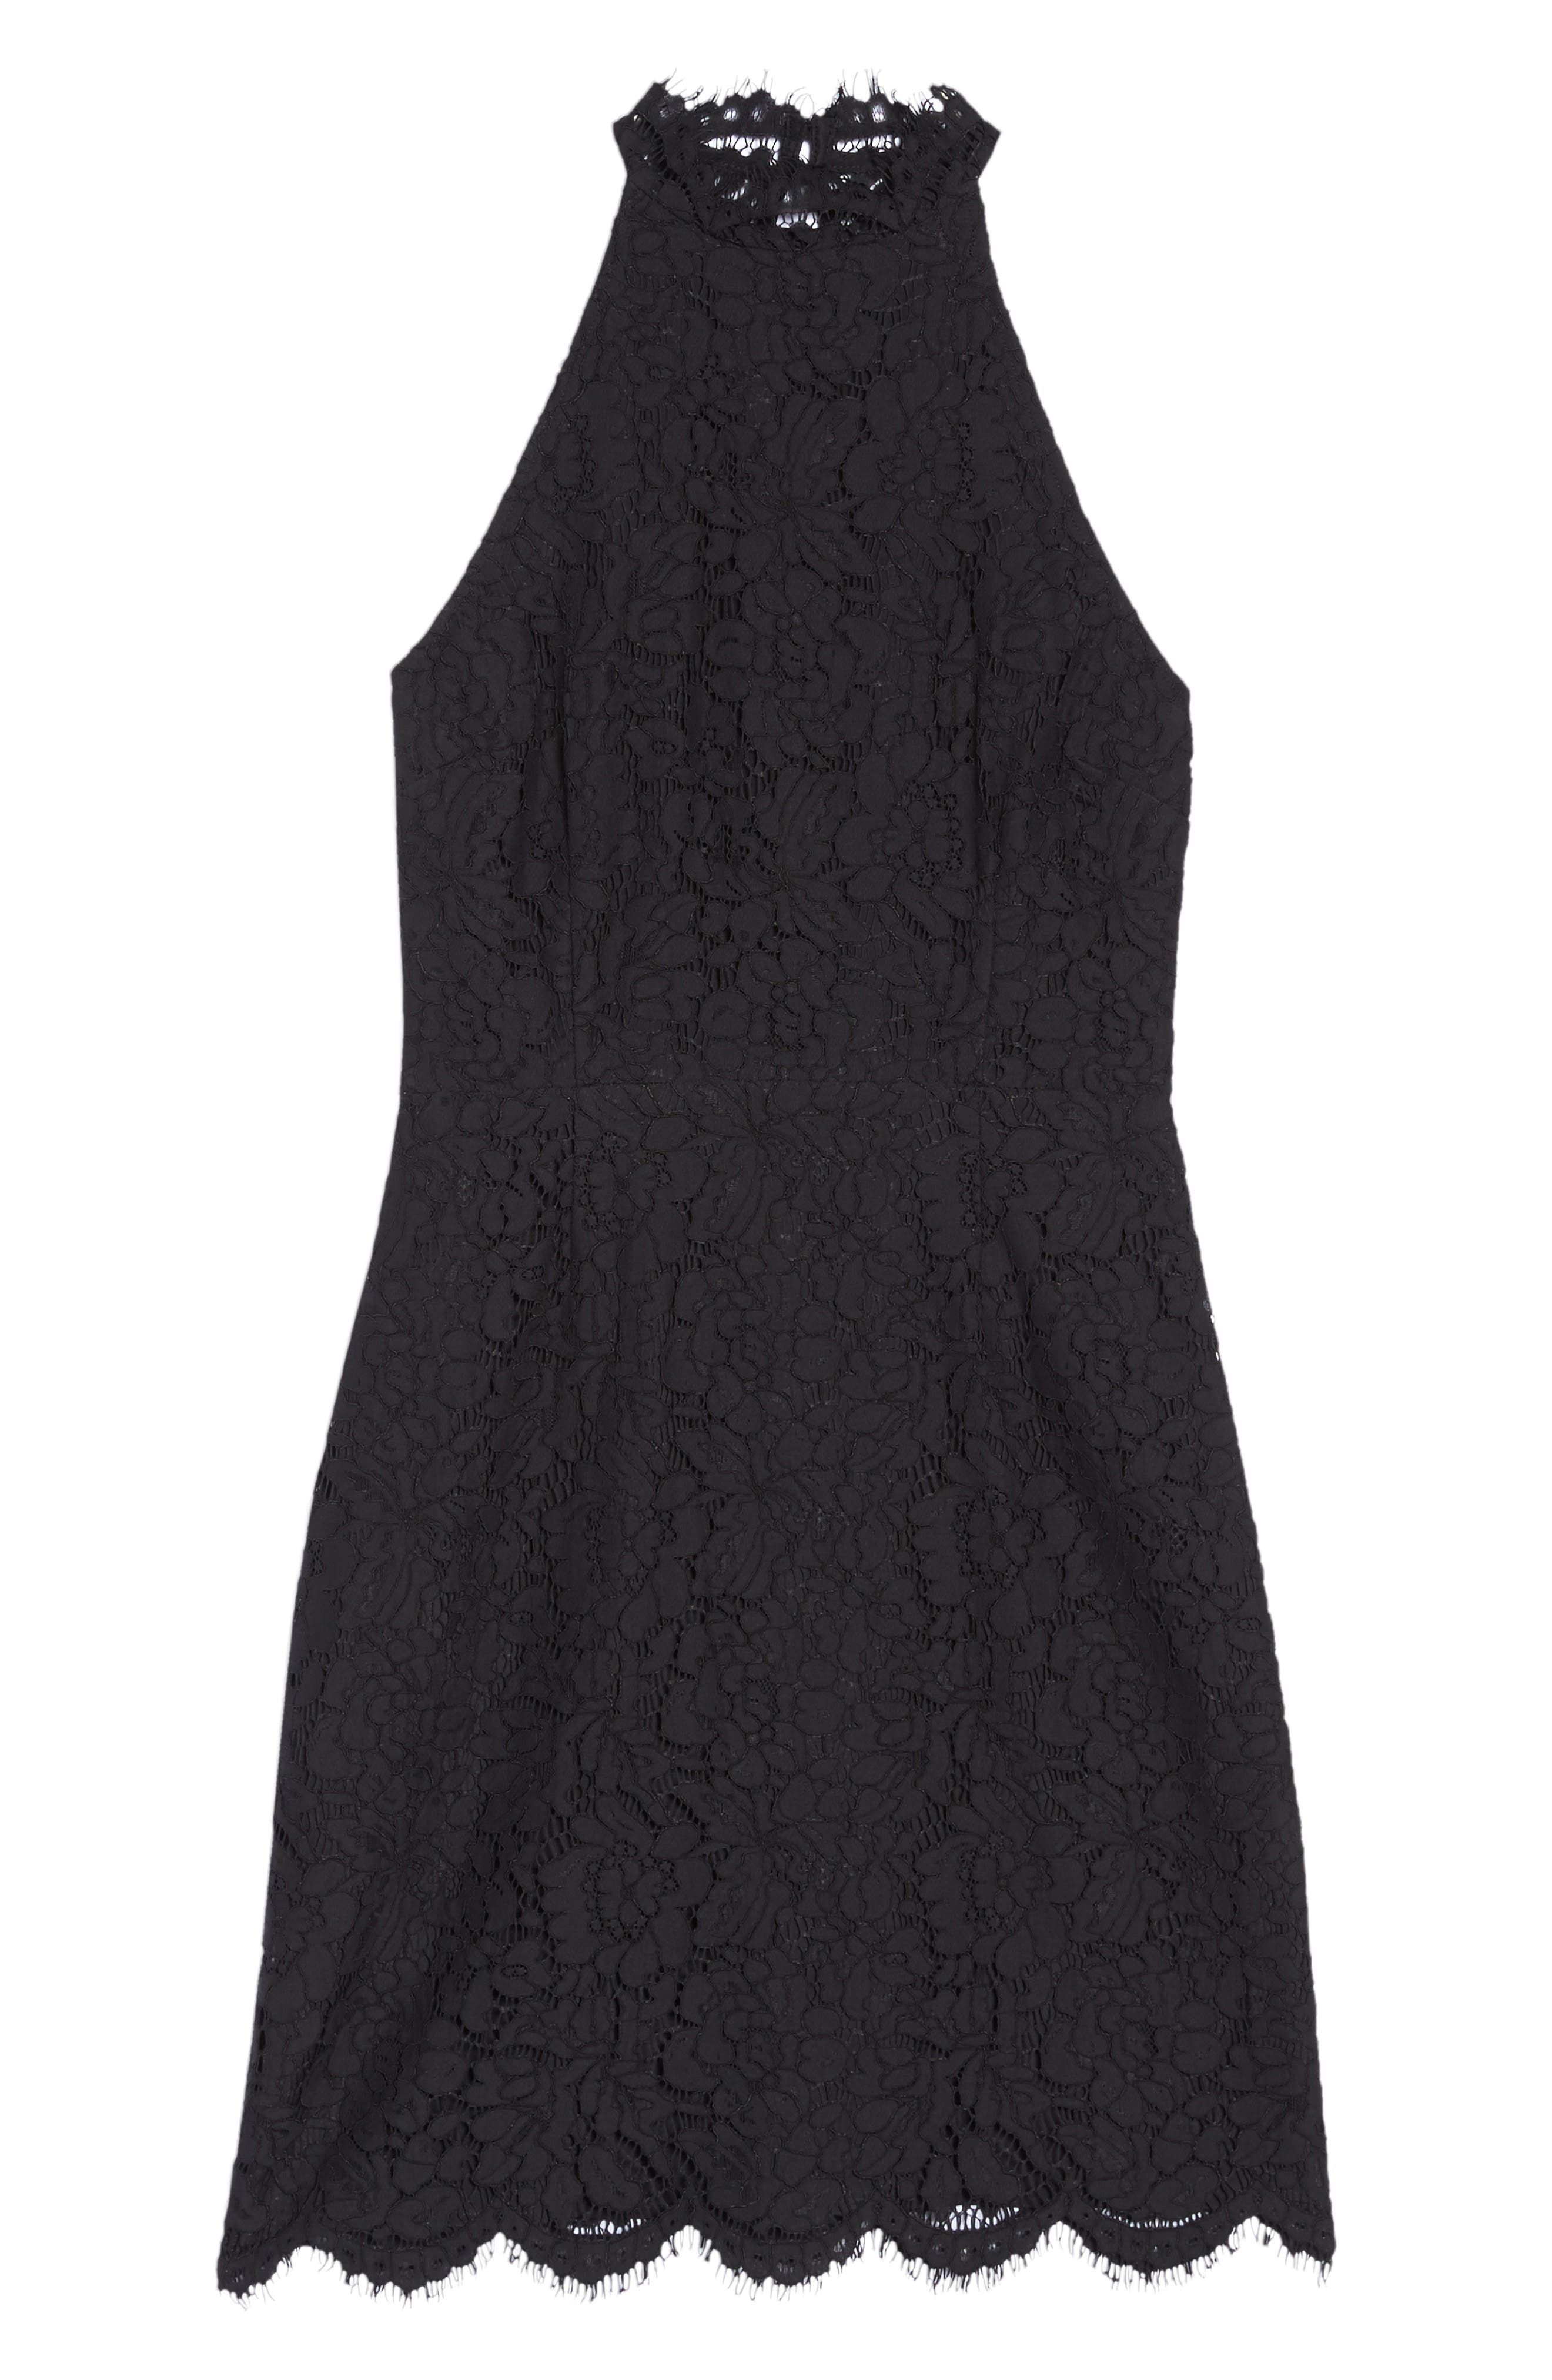 BB DAKOTA, Cara High Neck Lace Cocktail Dress, Alternate thumbnail 7, color, BLACK